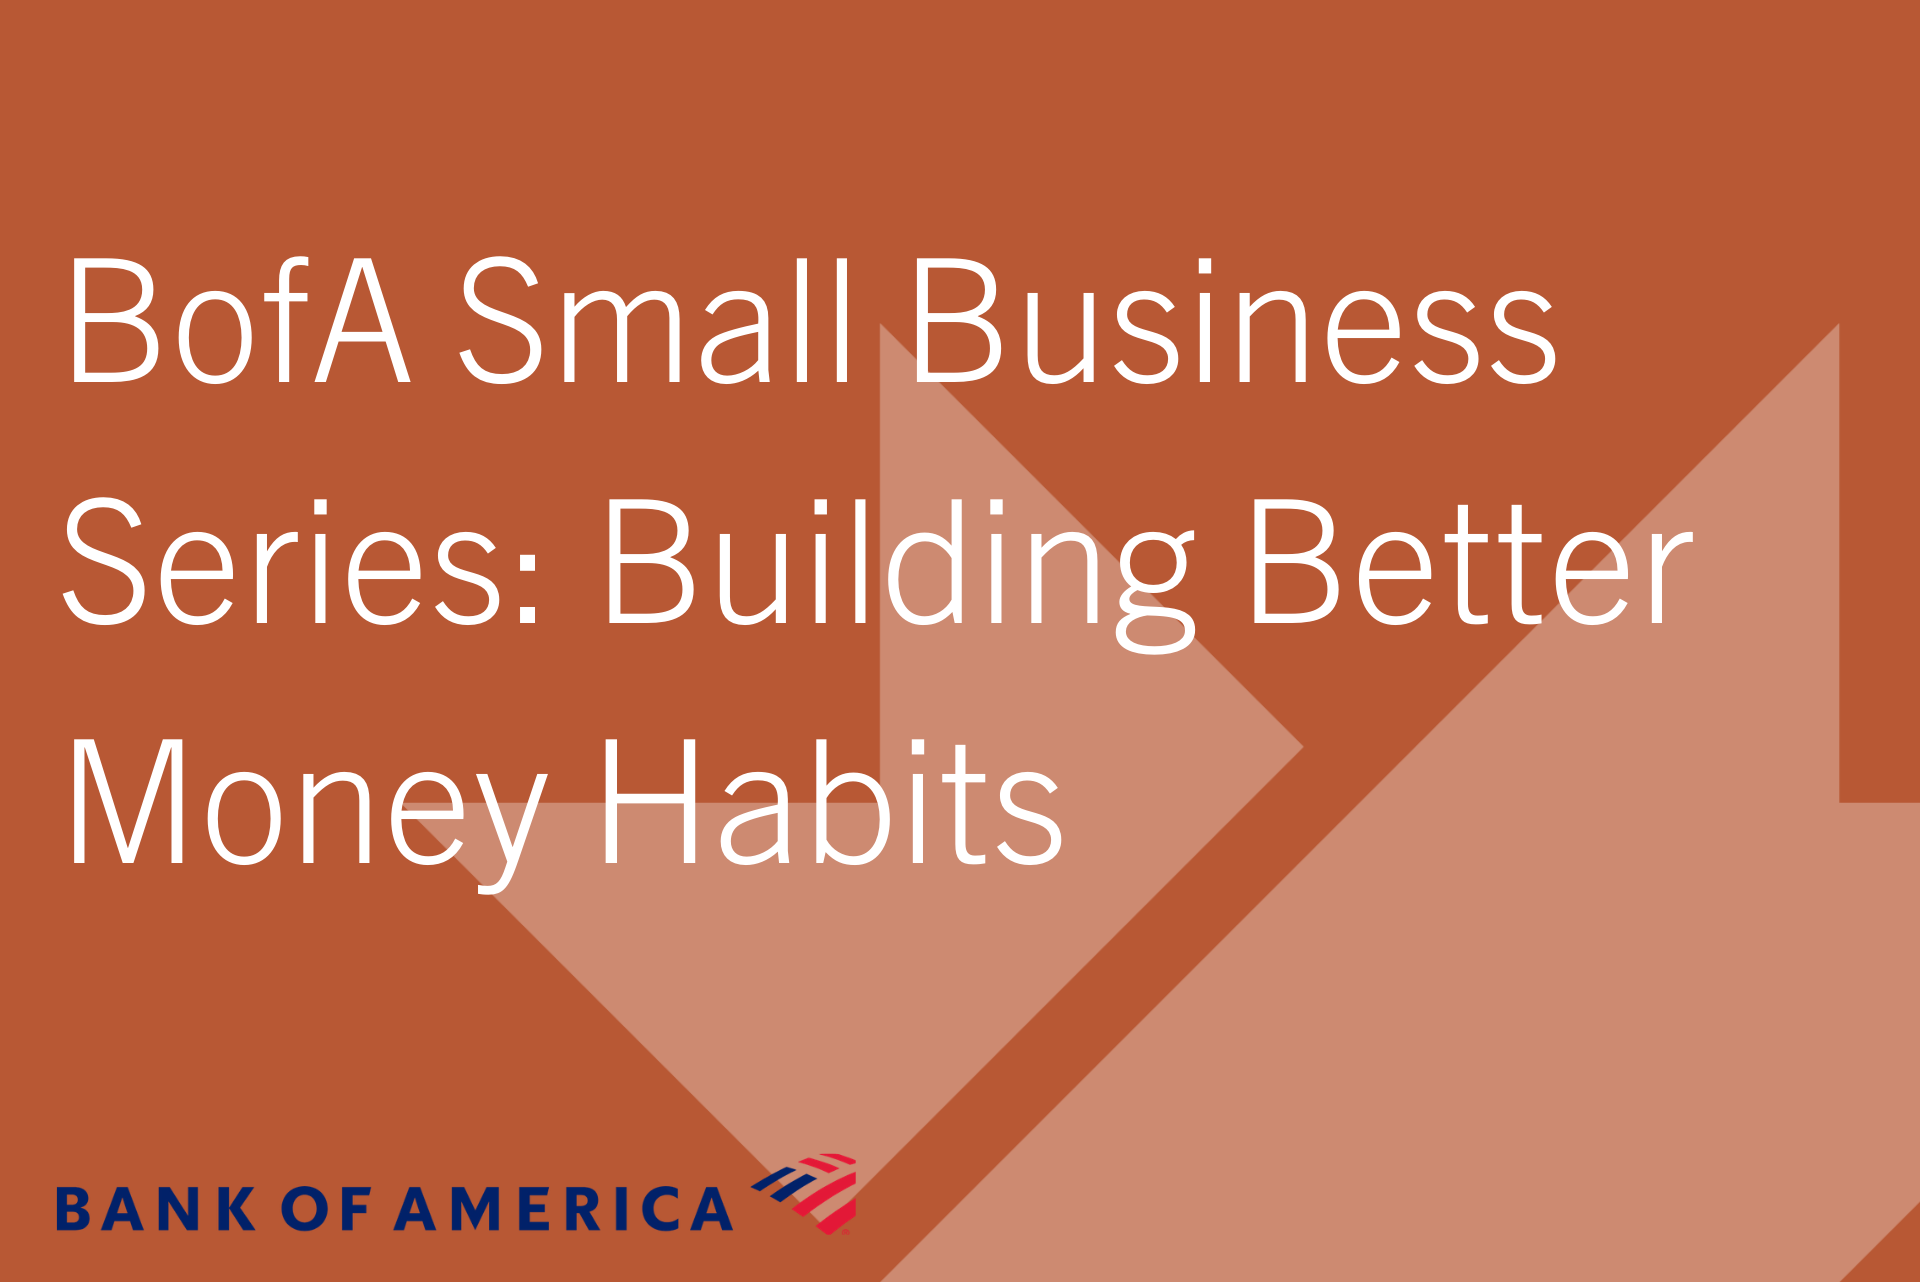 Better Money Habits for Small Business: Growing Your Small Business